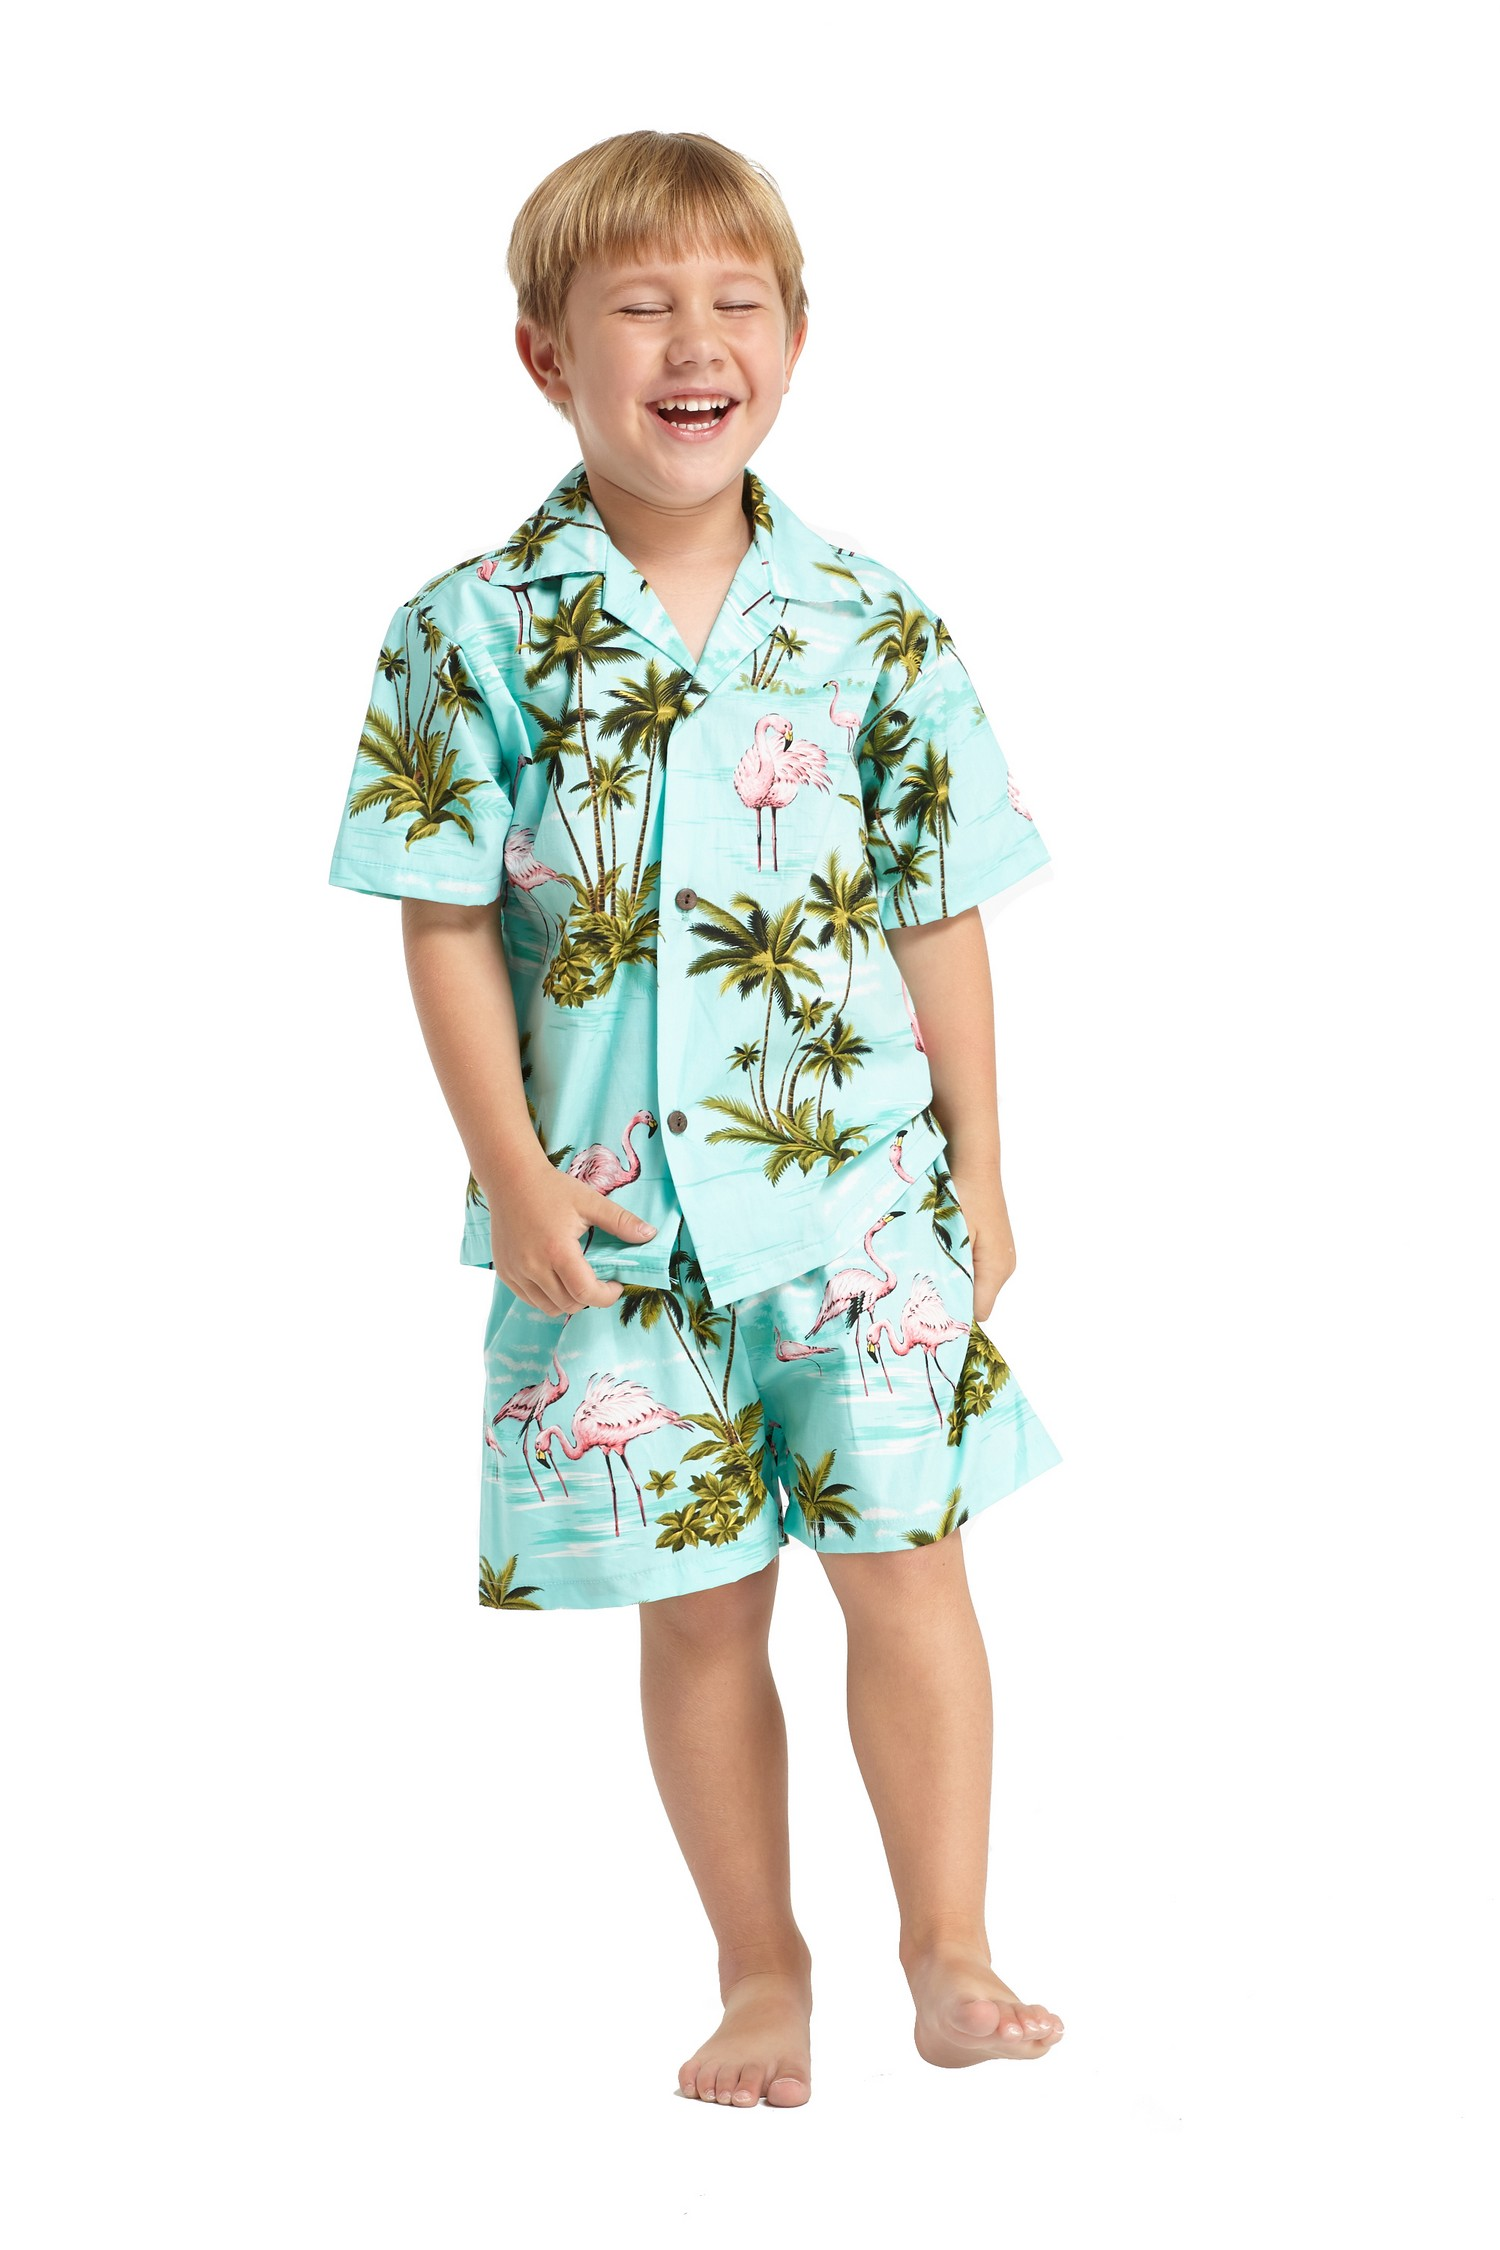 Hawaii Hangover Boy Aloha Luau Shirt Cabana Set in Flamingo in Love